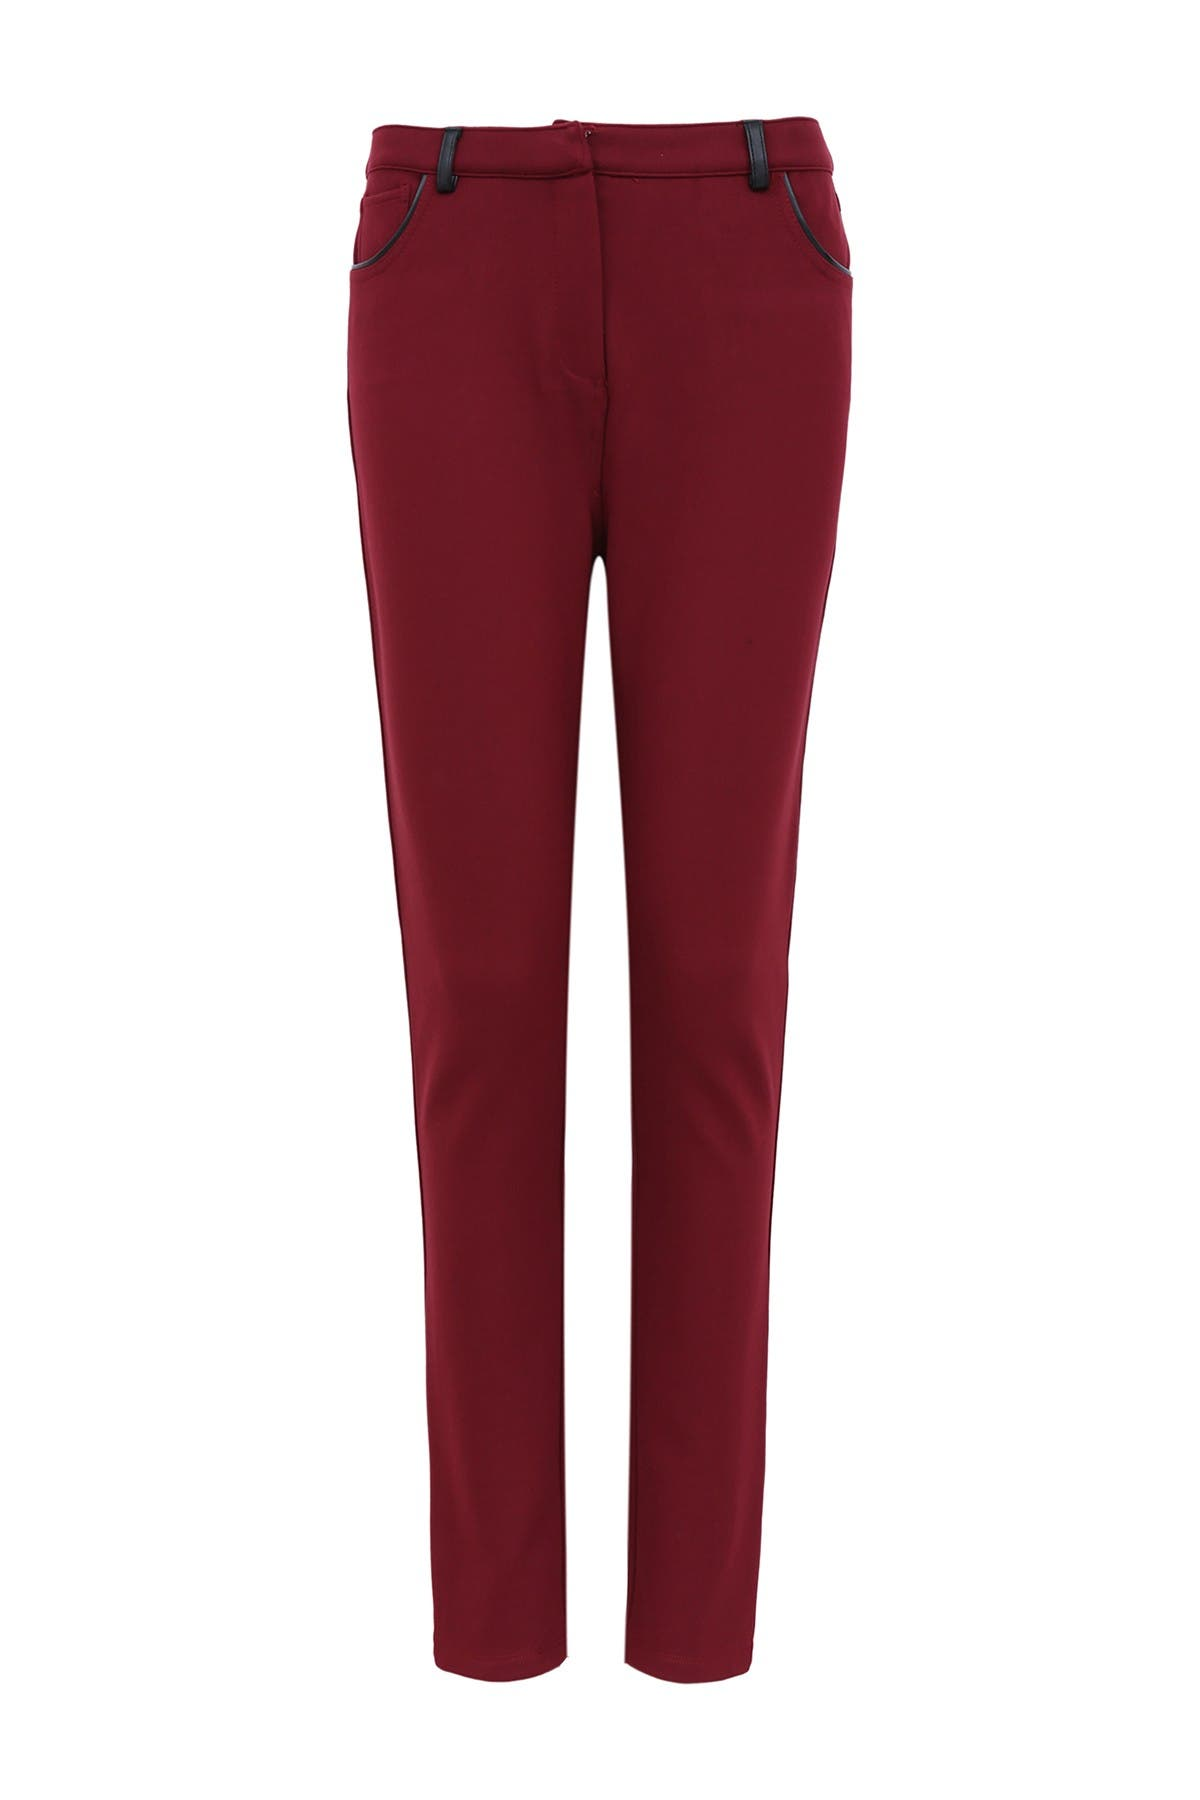 Image of FRNCH Faux Leather Trim Structured Skinny Pant